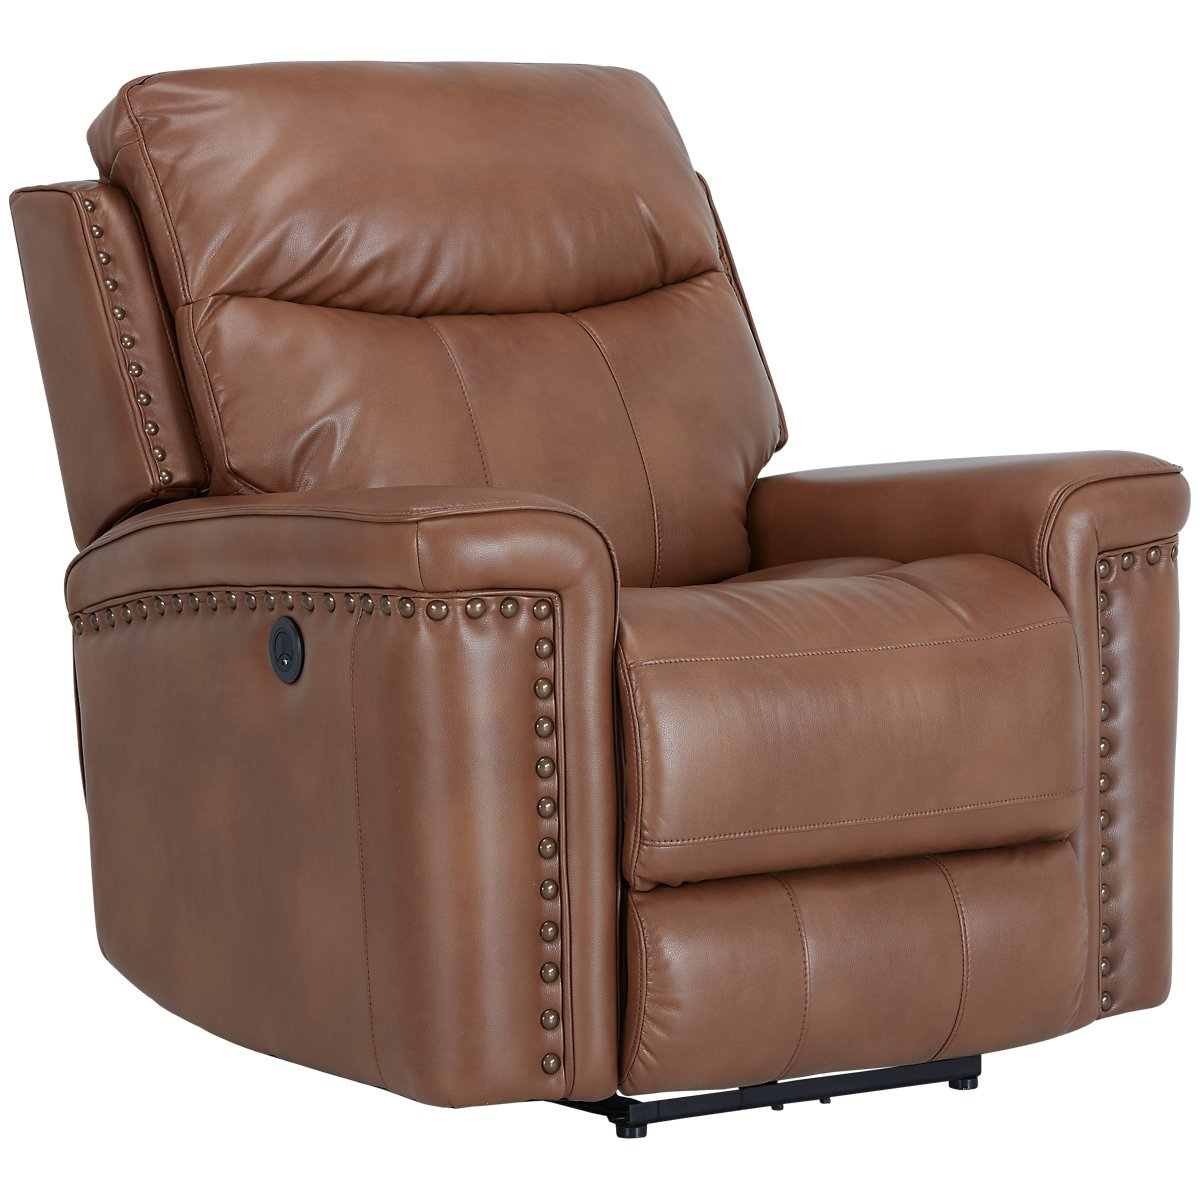 Wallace Medium Brown Microfiber Power Recliner